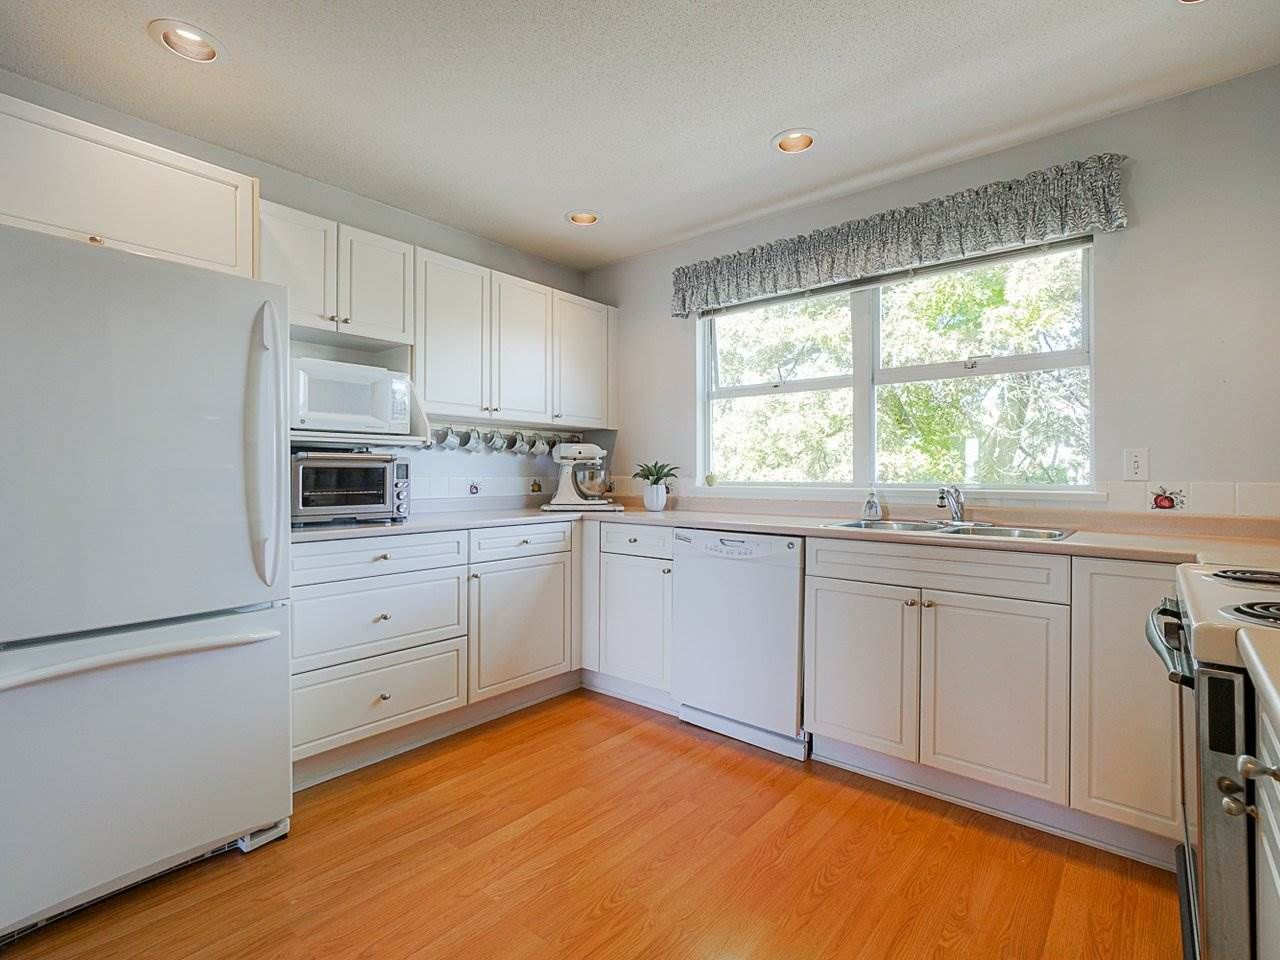 """Photo 29: Photos: 4 235 E KEITH Road in North Vancouver: Lower Lonsdale Townhouse for sale in """"Carriage Hill"""" : MLS®# R2471169"""